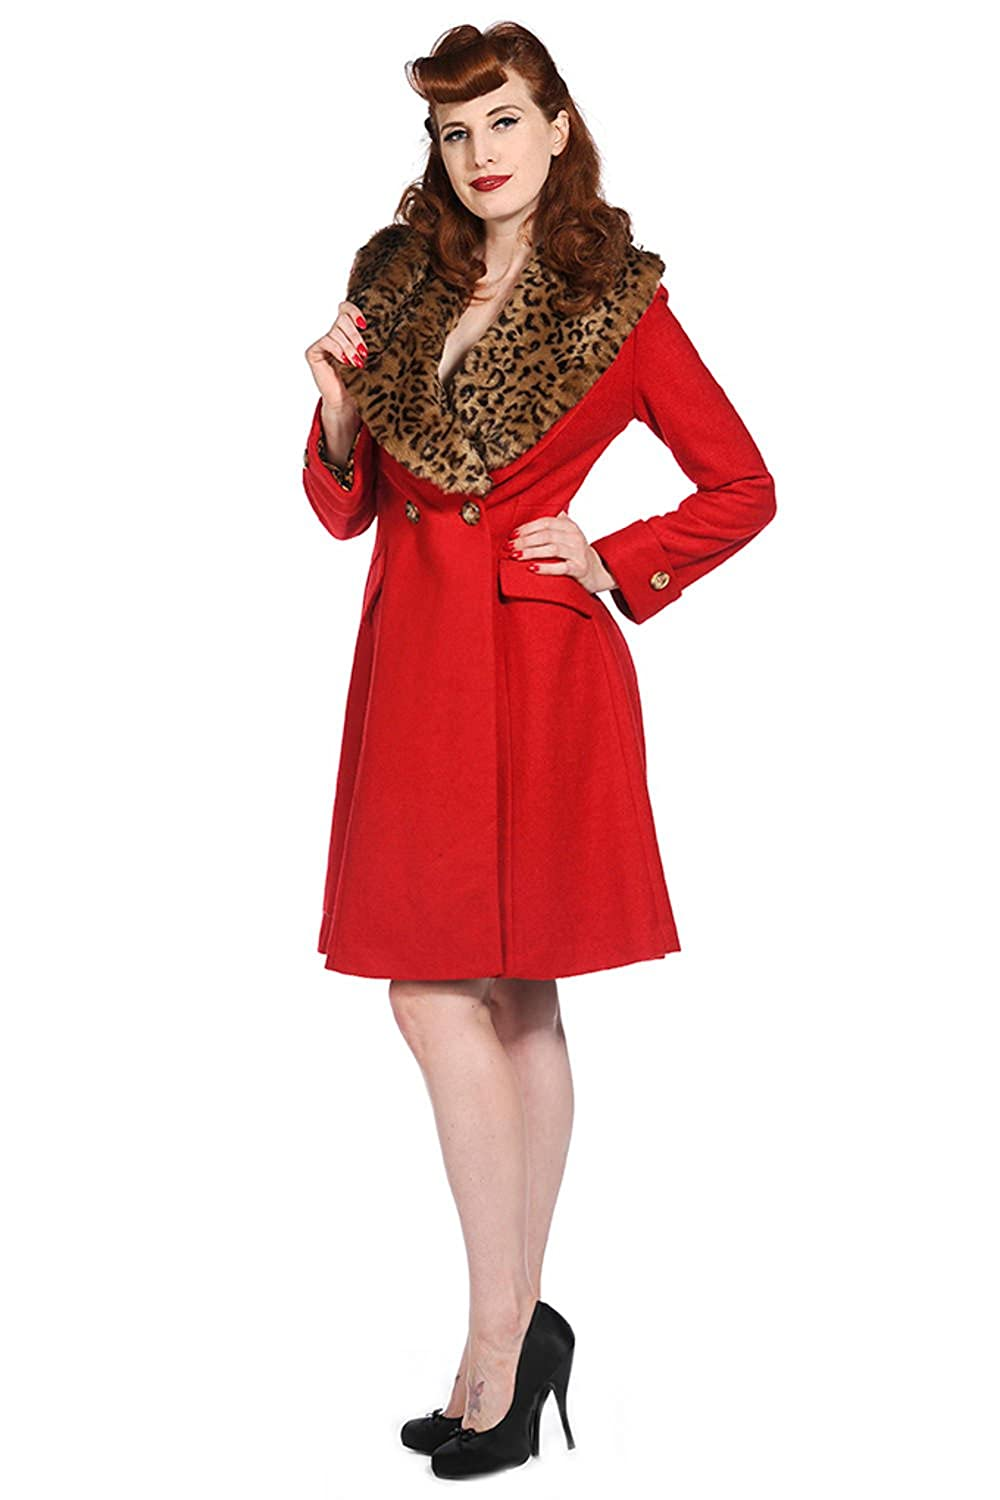 Retro Vintage Style Coats, Jackets, Fur Stoles Banned Vintage Coat £105.99 AT vintagedancer.com